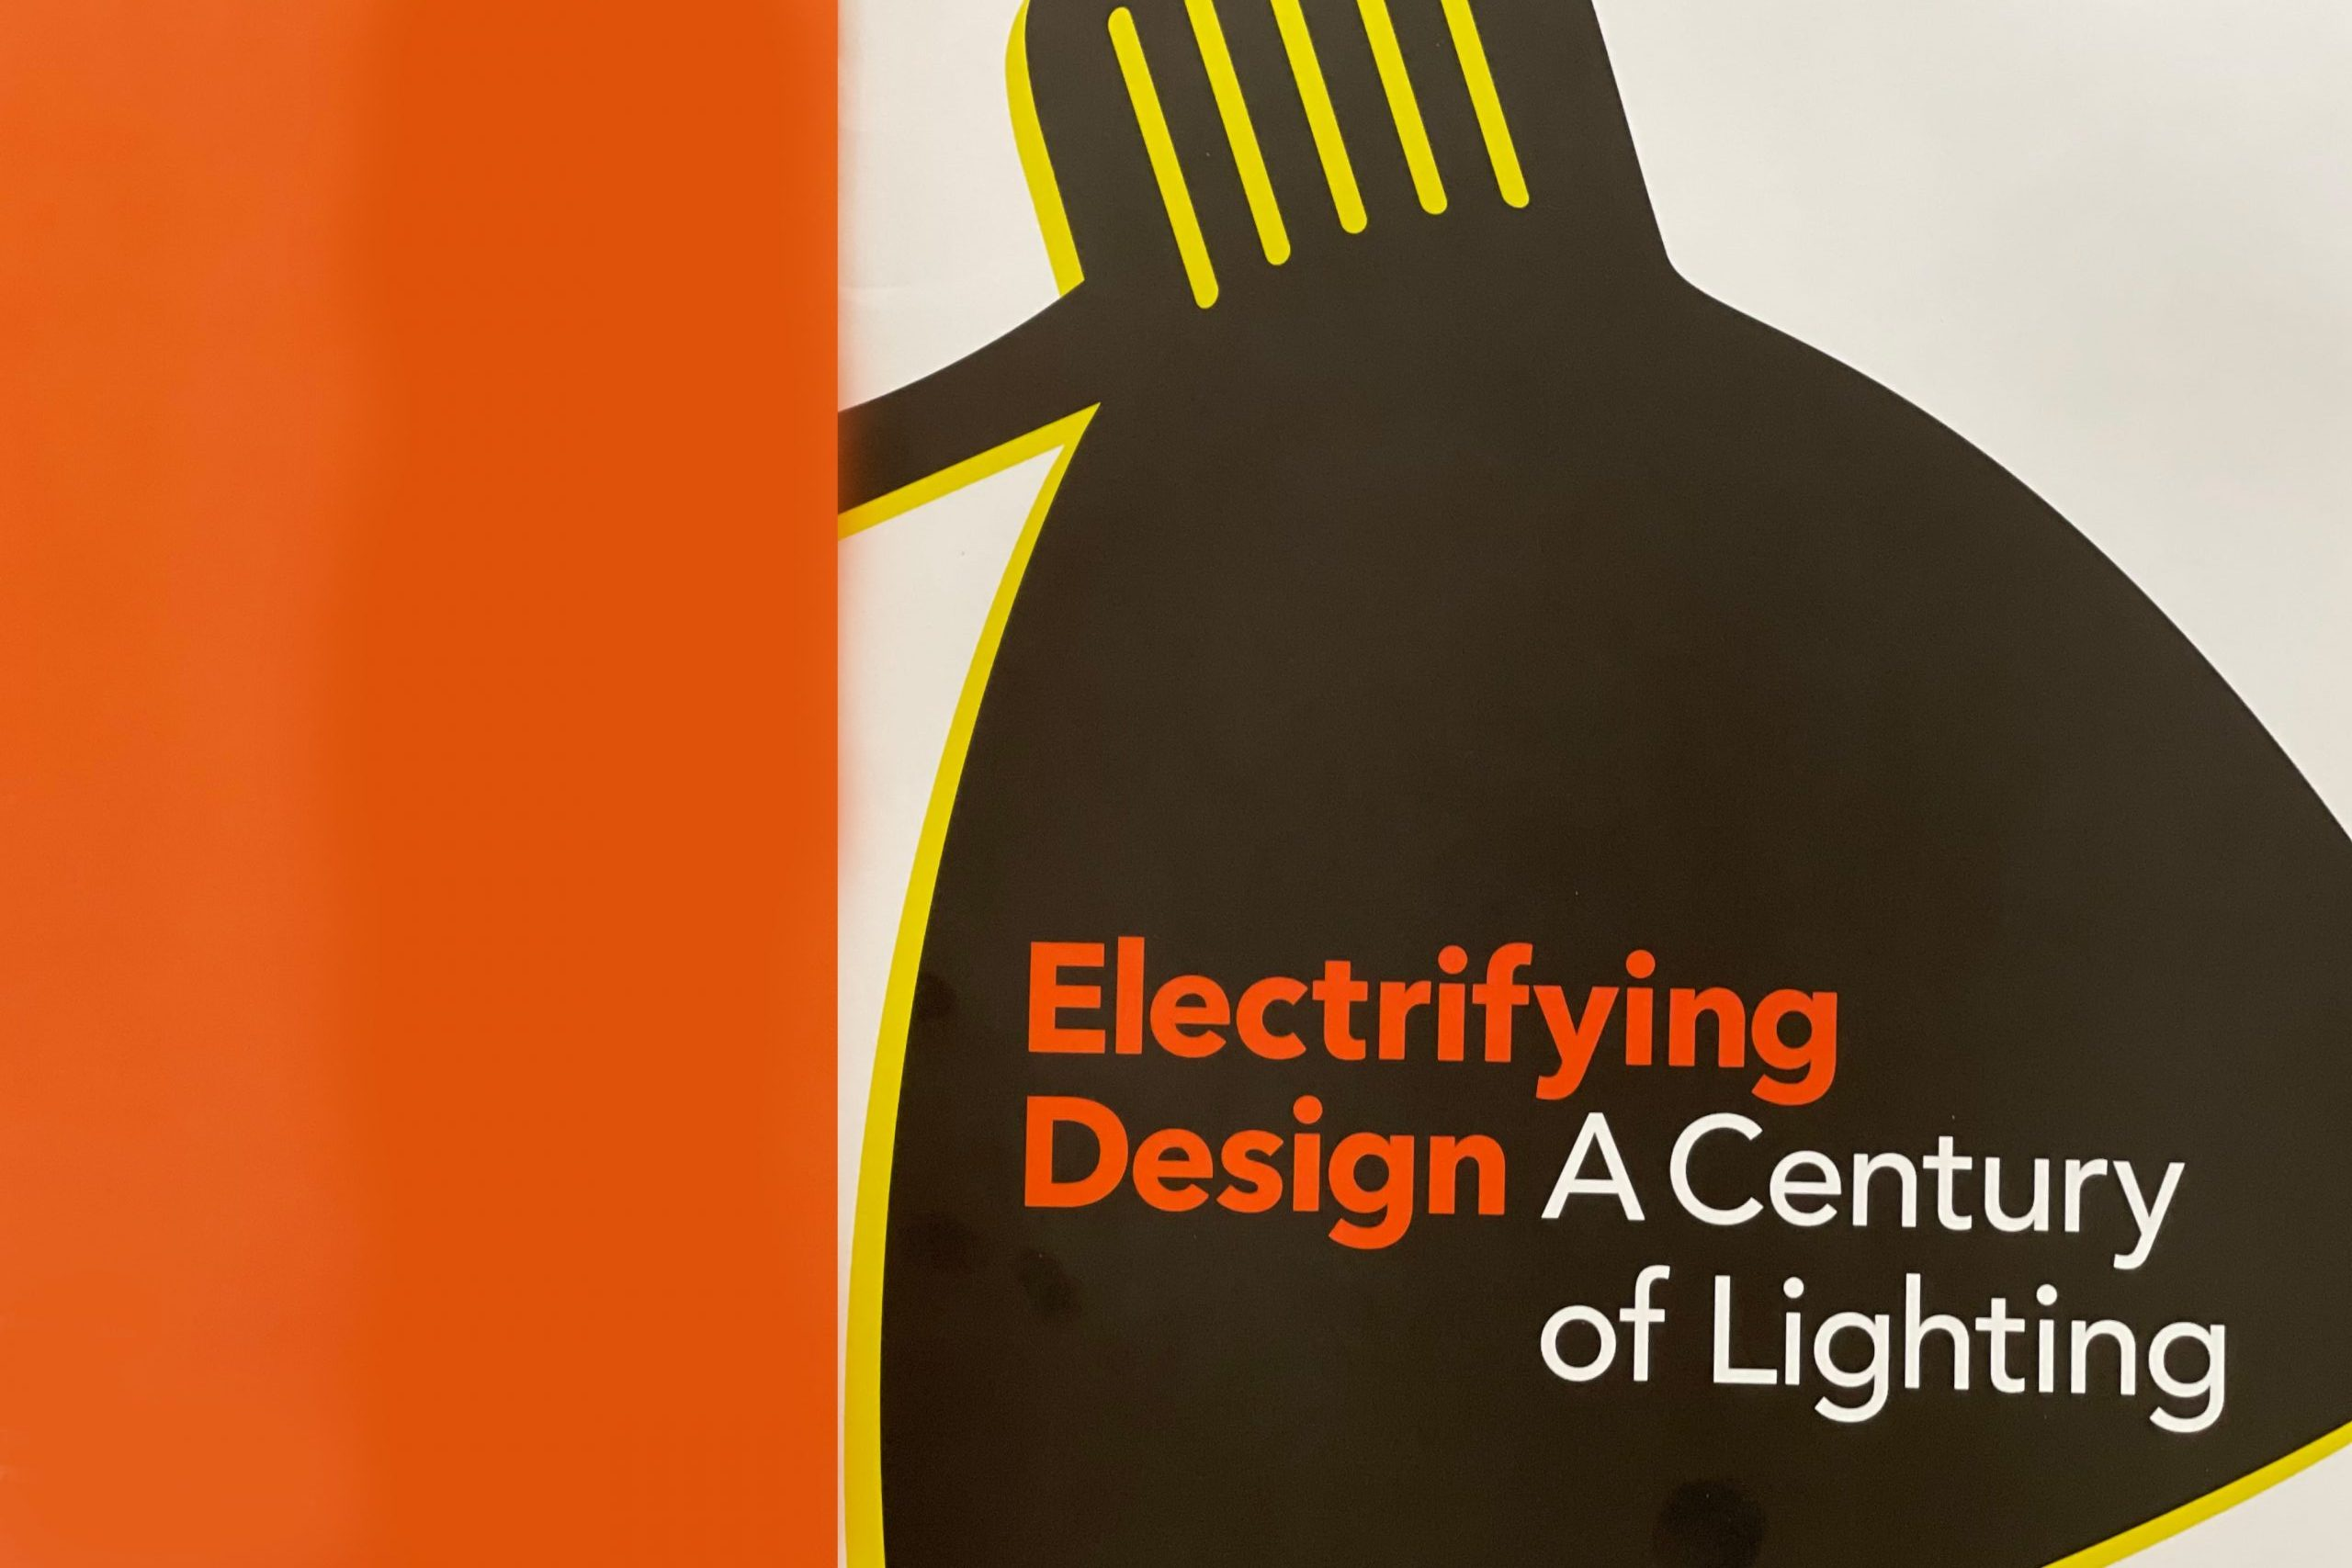 Electrifying Design Exhibition at the MFAH curated by Cindi Strauss